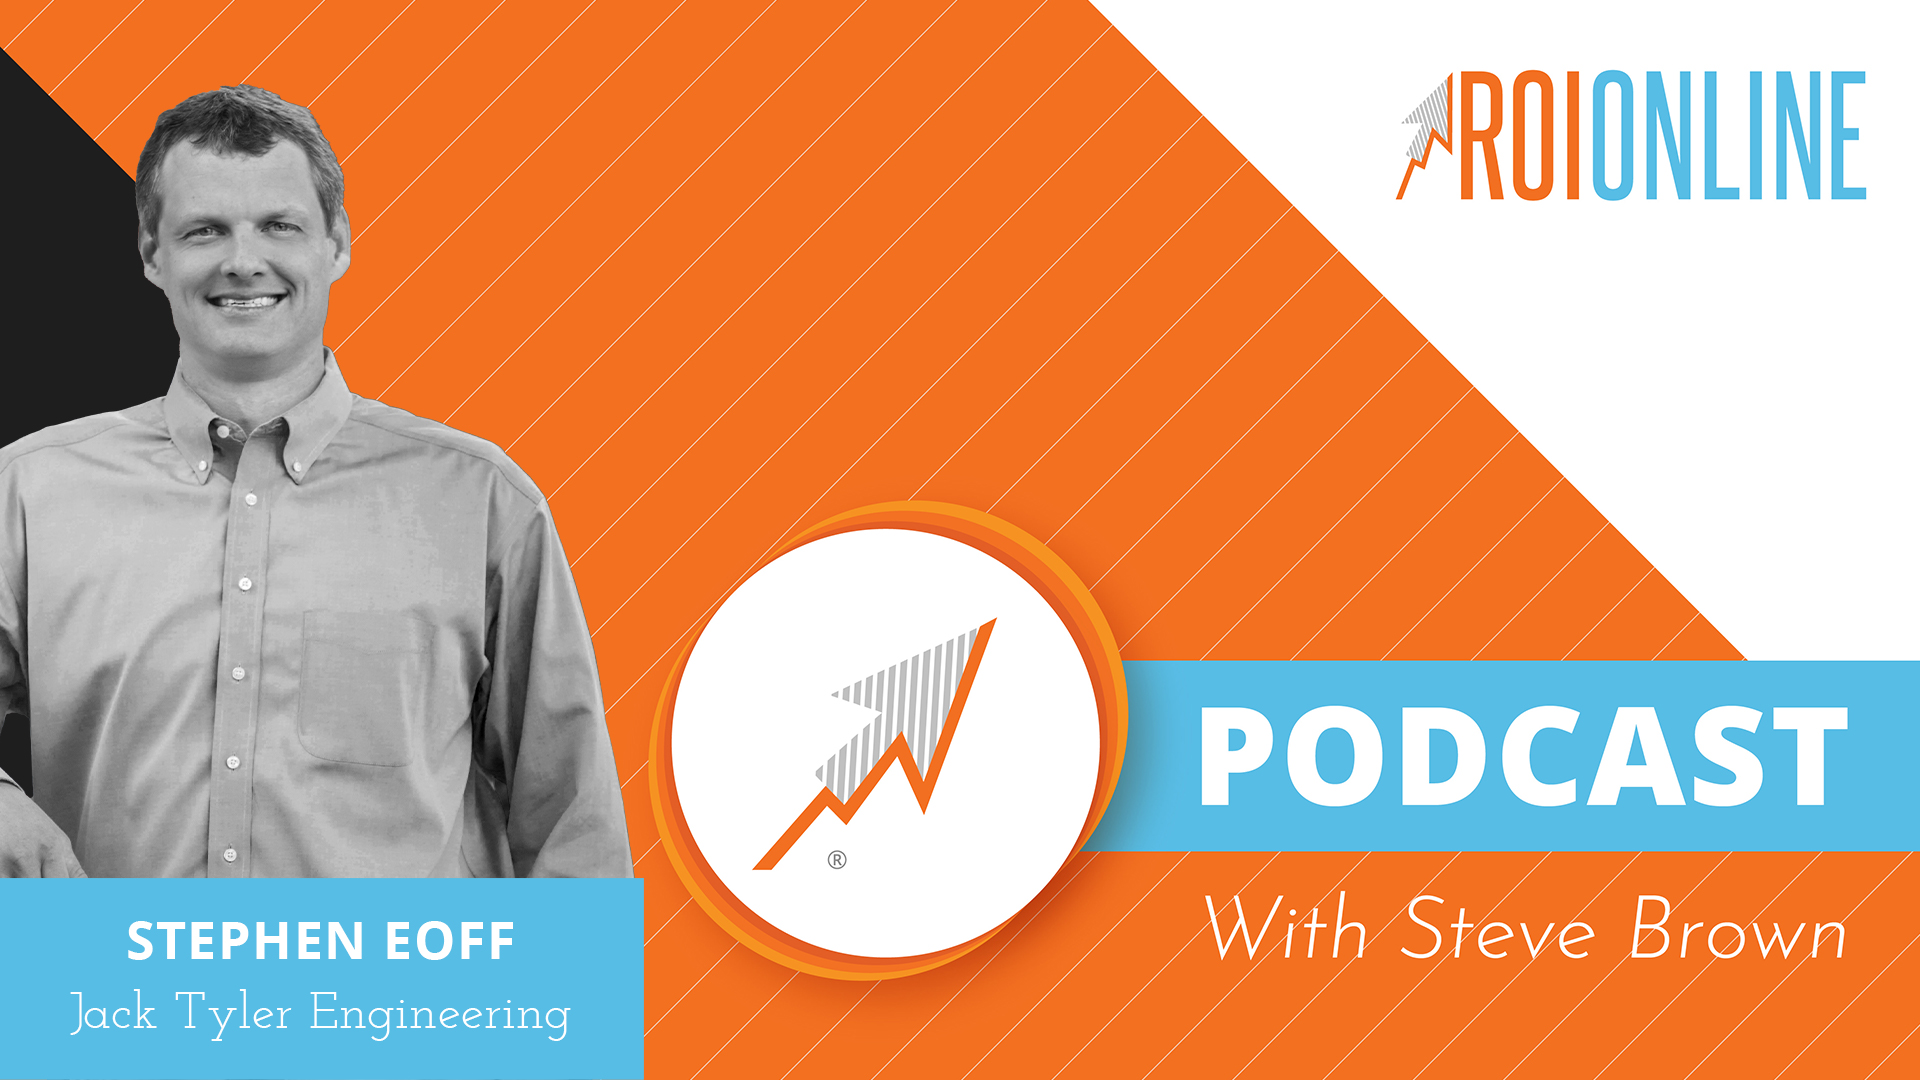 The ROI Online podcast graphic of Stephen Eoff